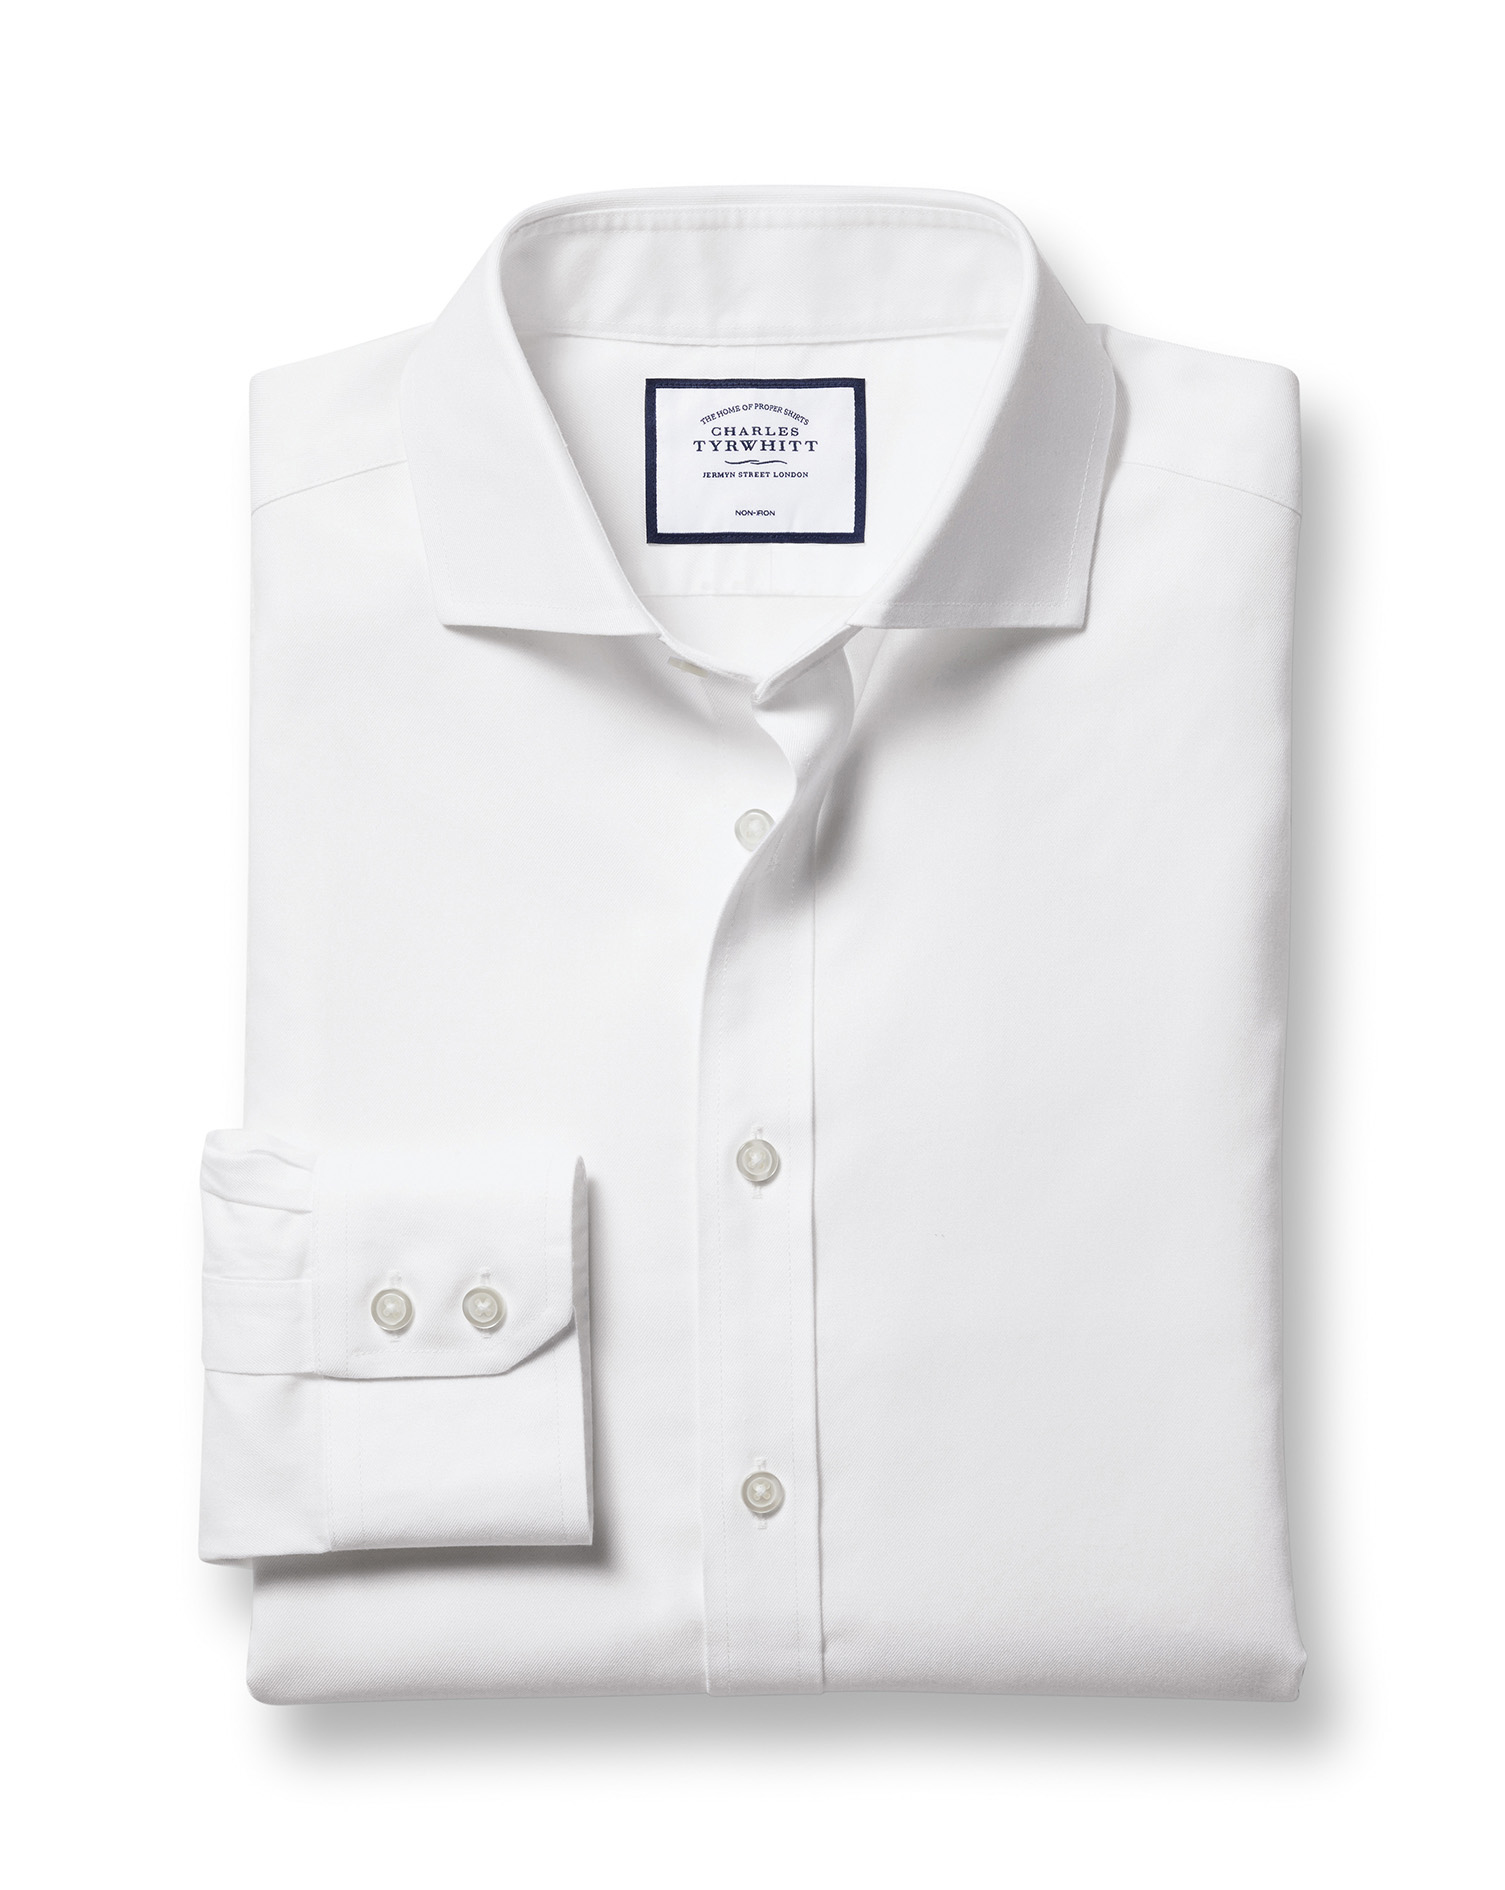 Classic Fit White Non-Iron Twill Cutaway Cotton Formal Shirt by Charles Tyrwhitt